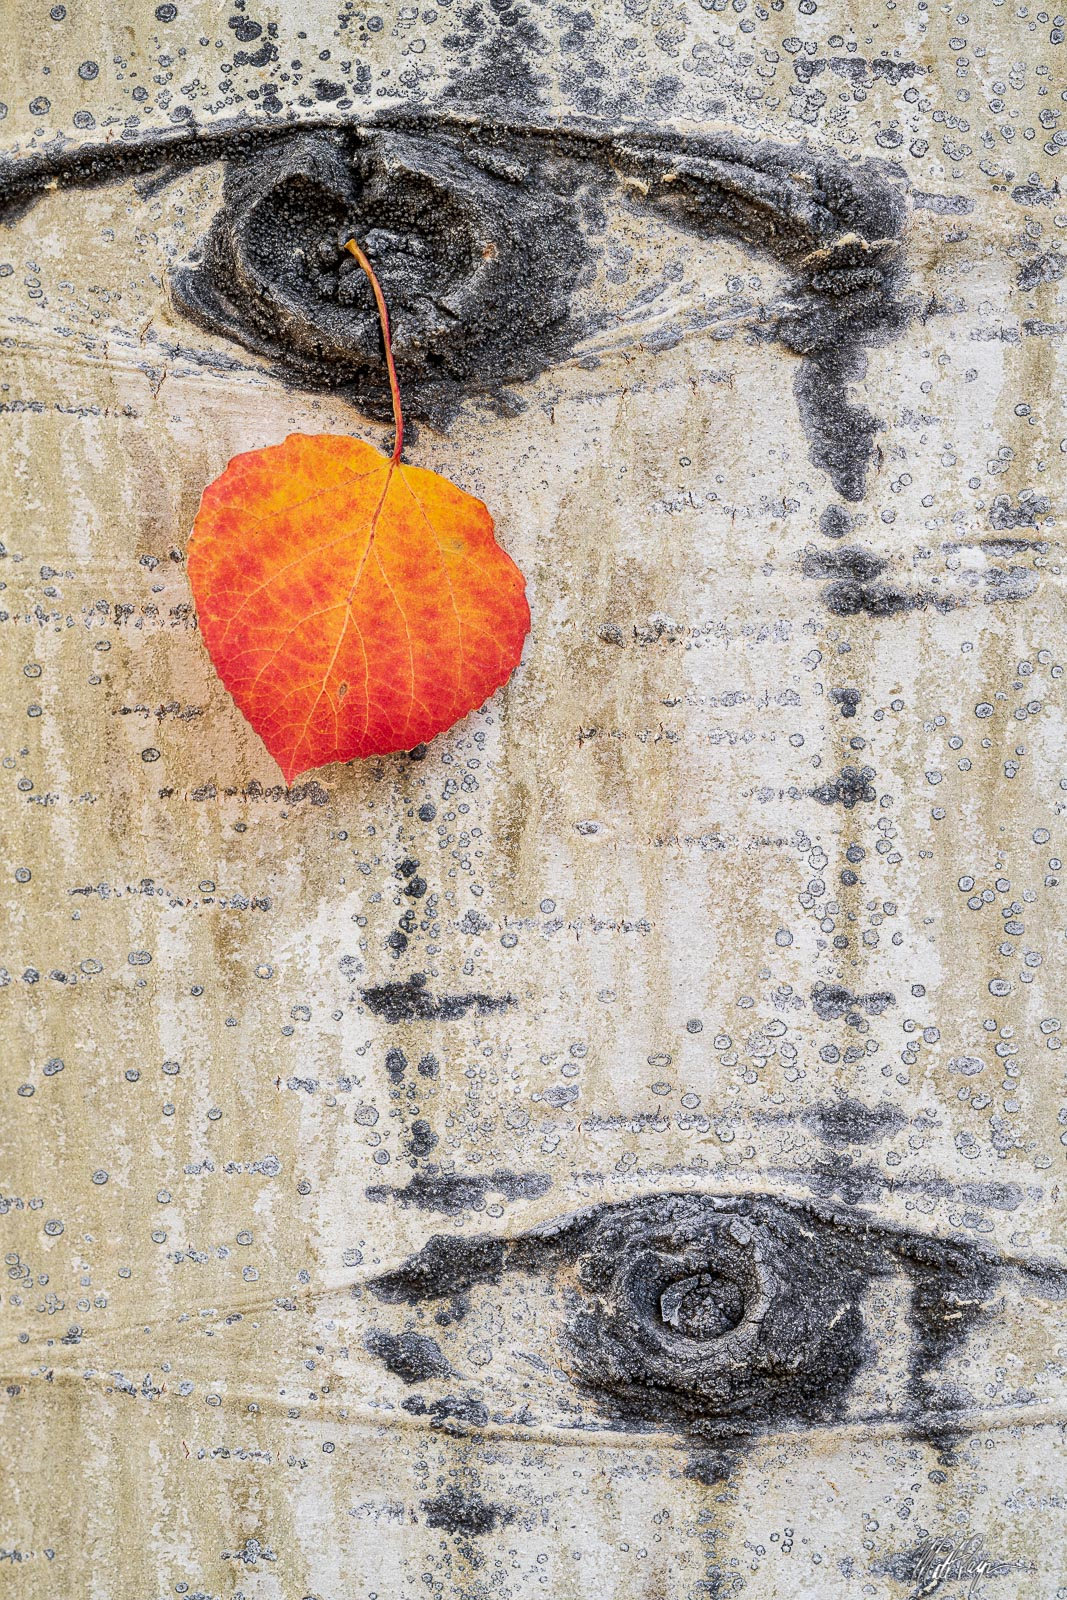 Textures, colors, and fall foliage. Pretty nice combination in my opinion. Here, a red aspen leaf rests in a small gap of the...